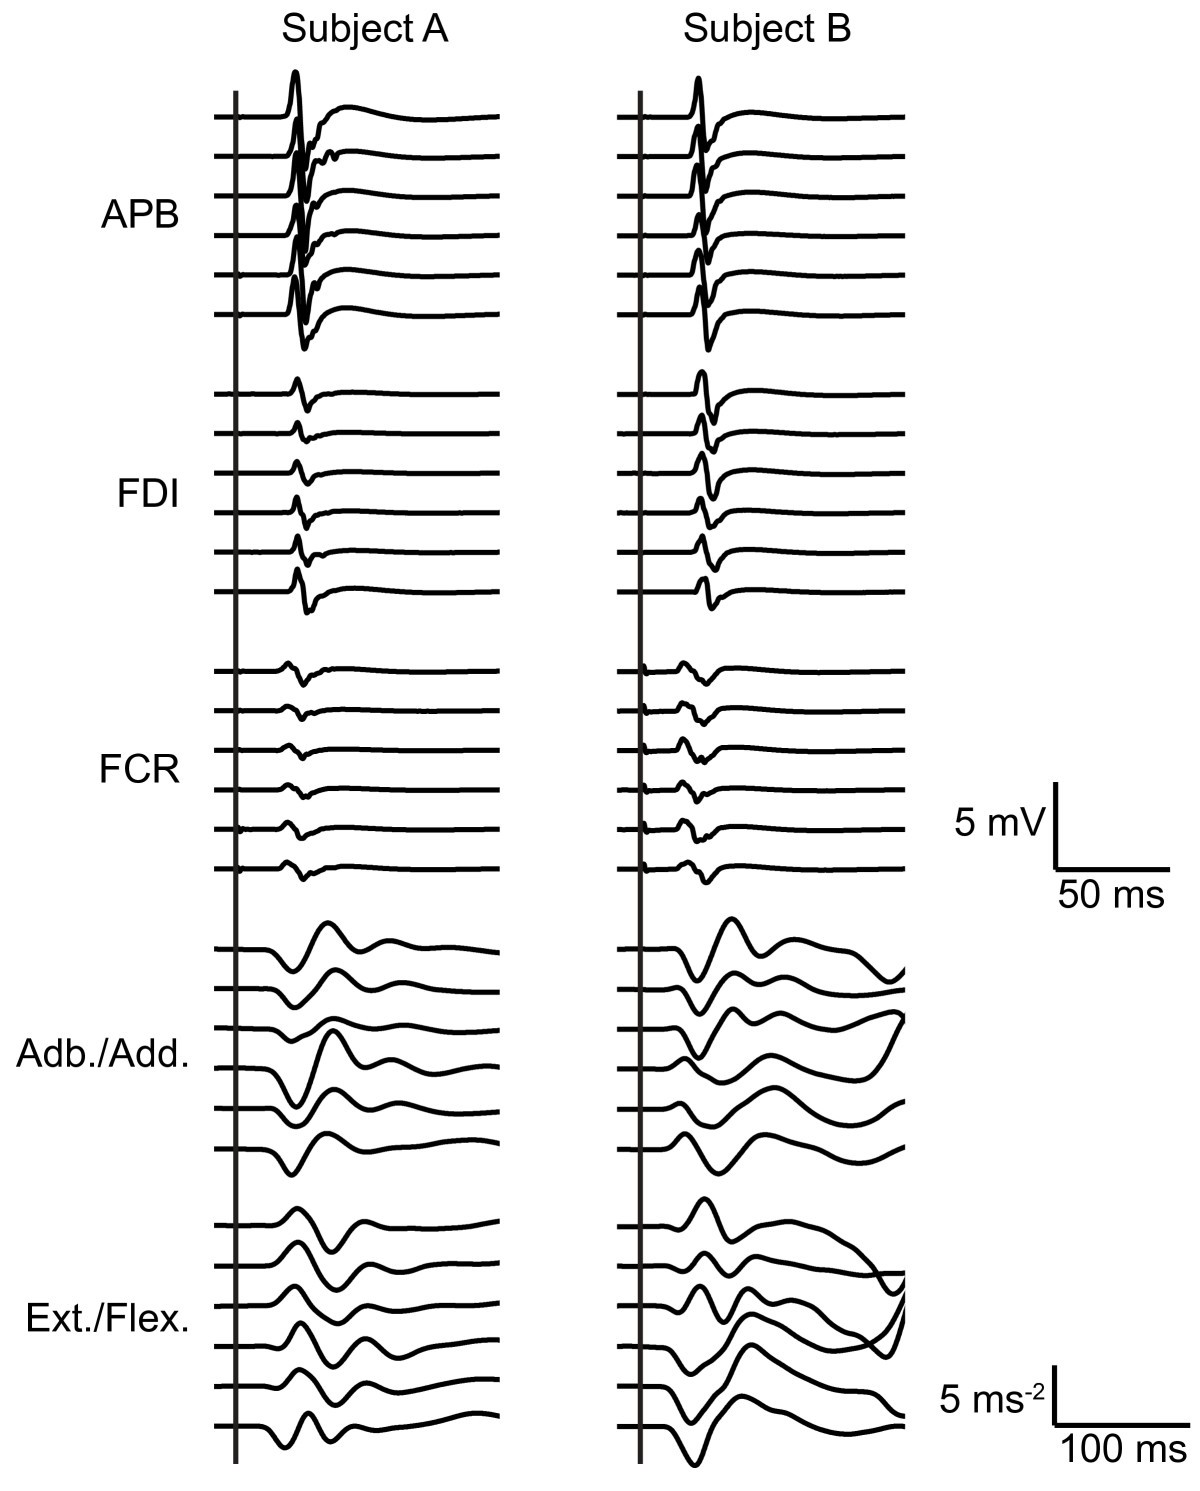 changes in corticospinal excitability and the direction of evoked movements during motor